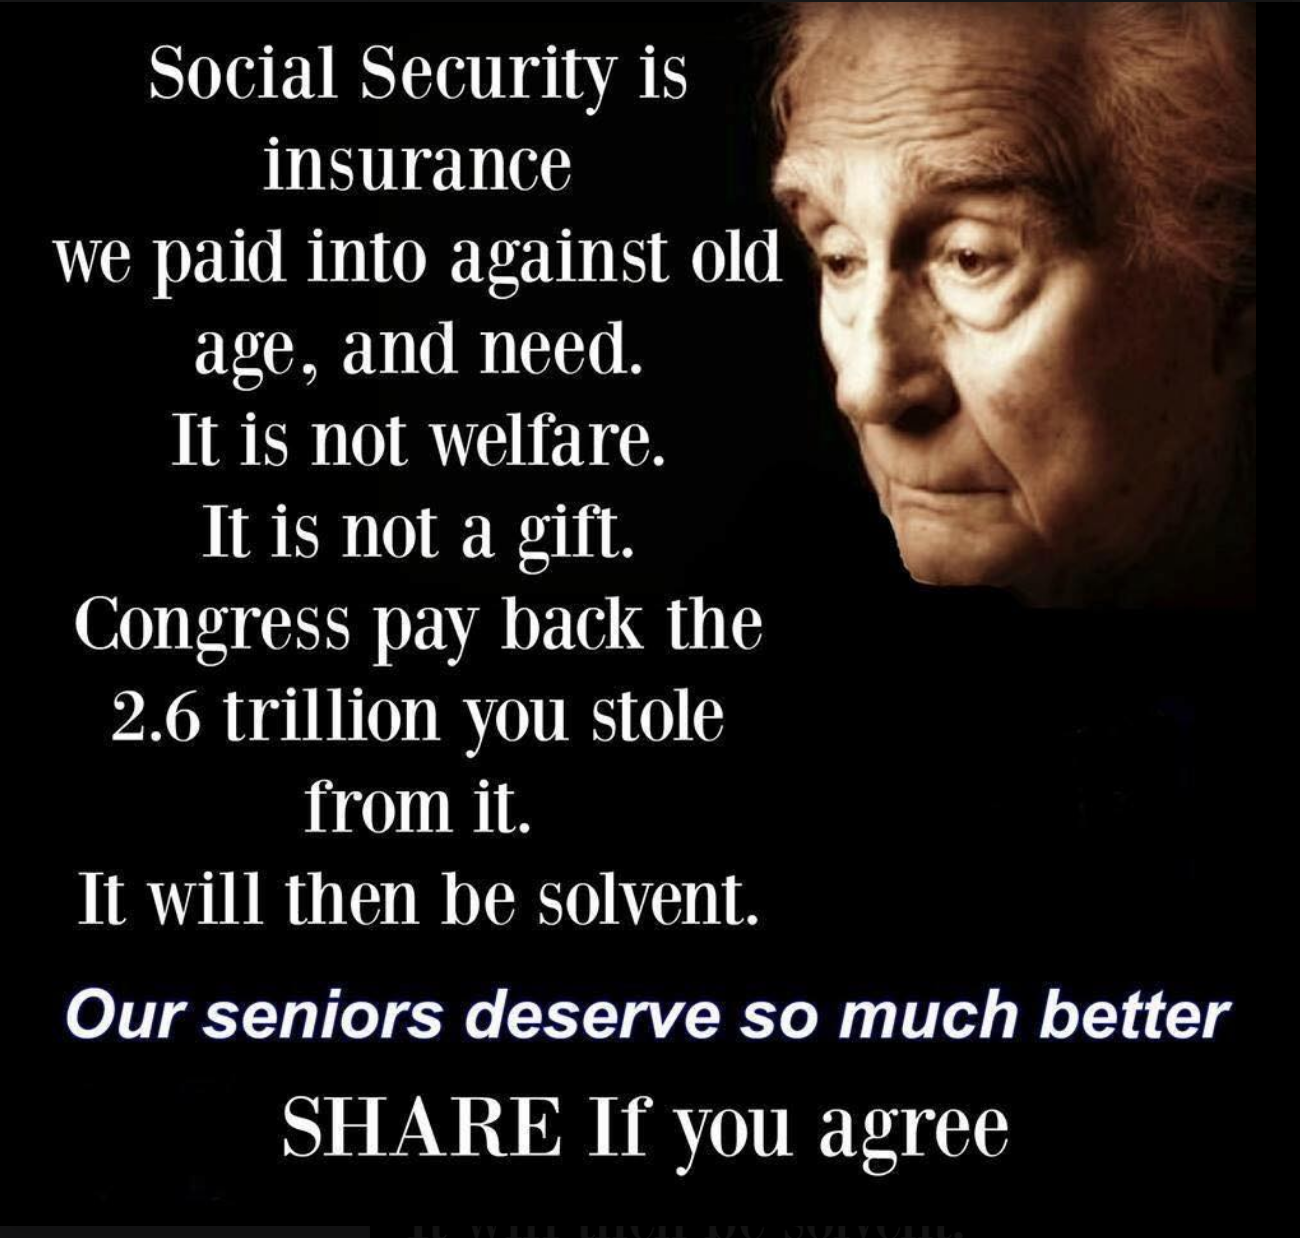 The Seniors Center is forwarding this from a friend: Social Security is insurance we paid into against old age, and need.  It is not welfare.  It is not a gift.  Congress pay back the $2.6 trillion you stole from it.  It will then be solvent.  Our Seniors deserve so much better. SHARE if you agree